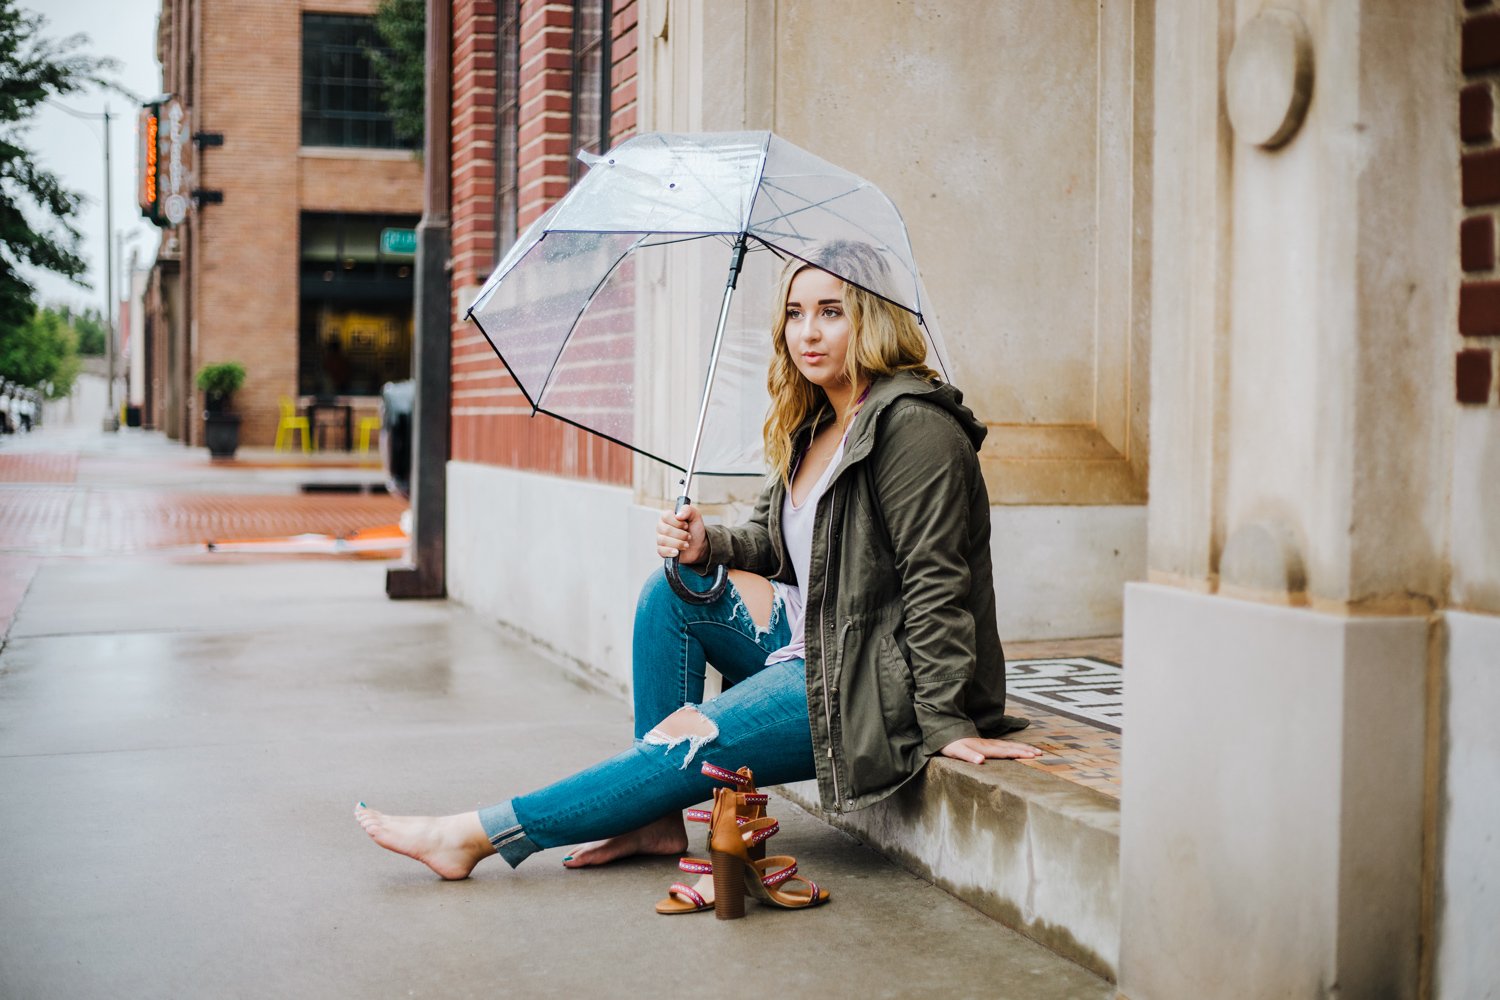 Oklahoma Senior girl sitting on step holding a clear umbrella in downtown Oklahoma City by Amanda Lynn Photography.